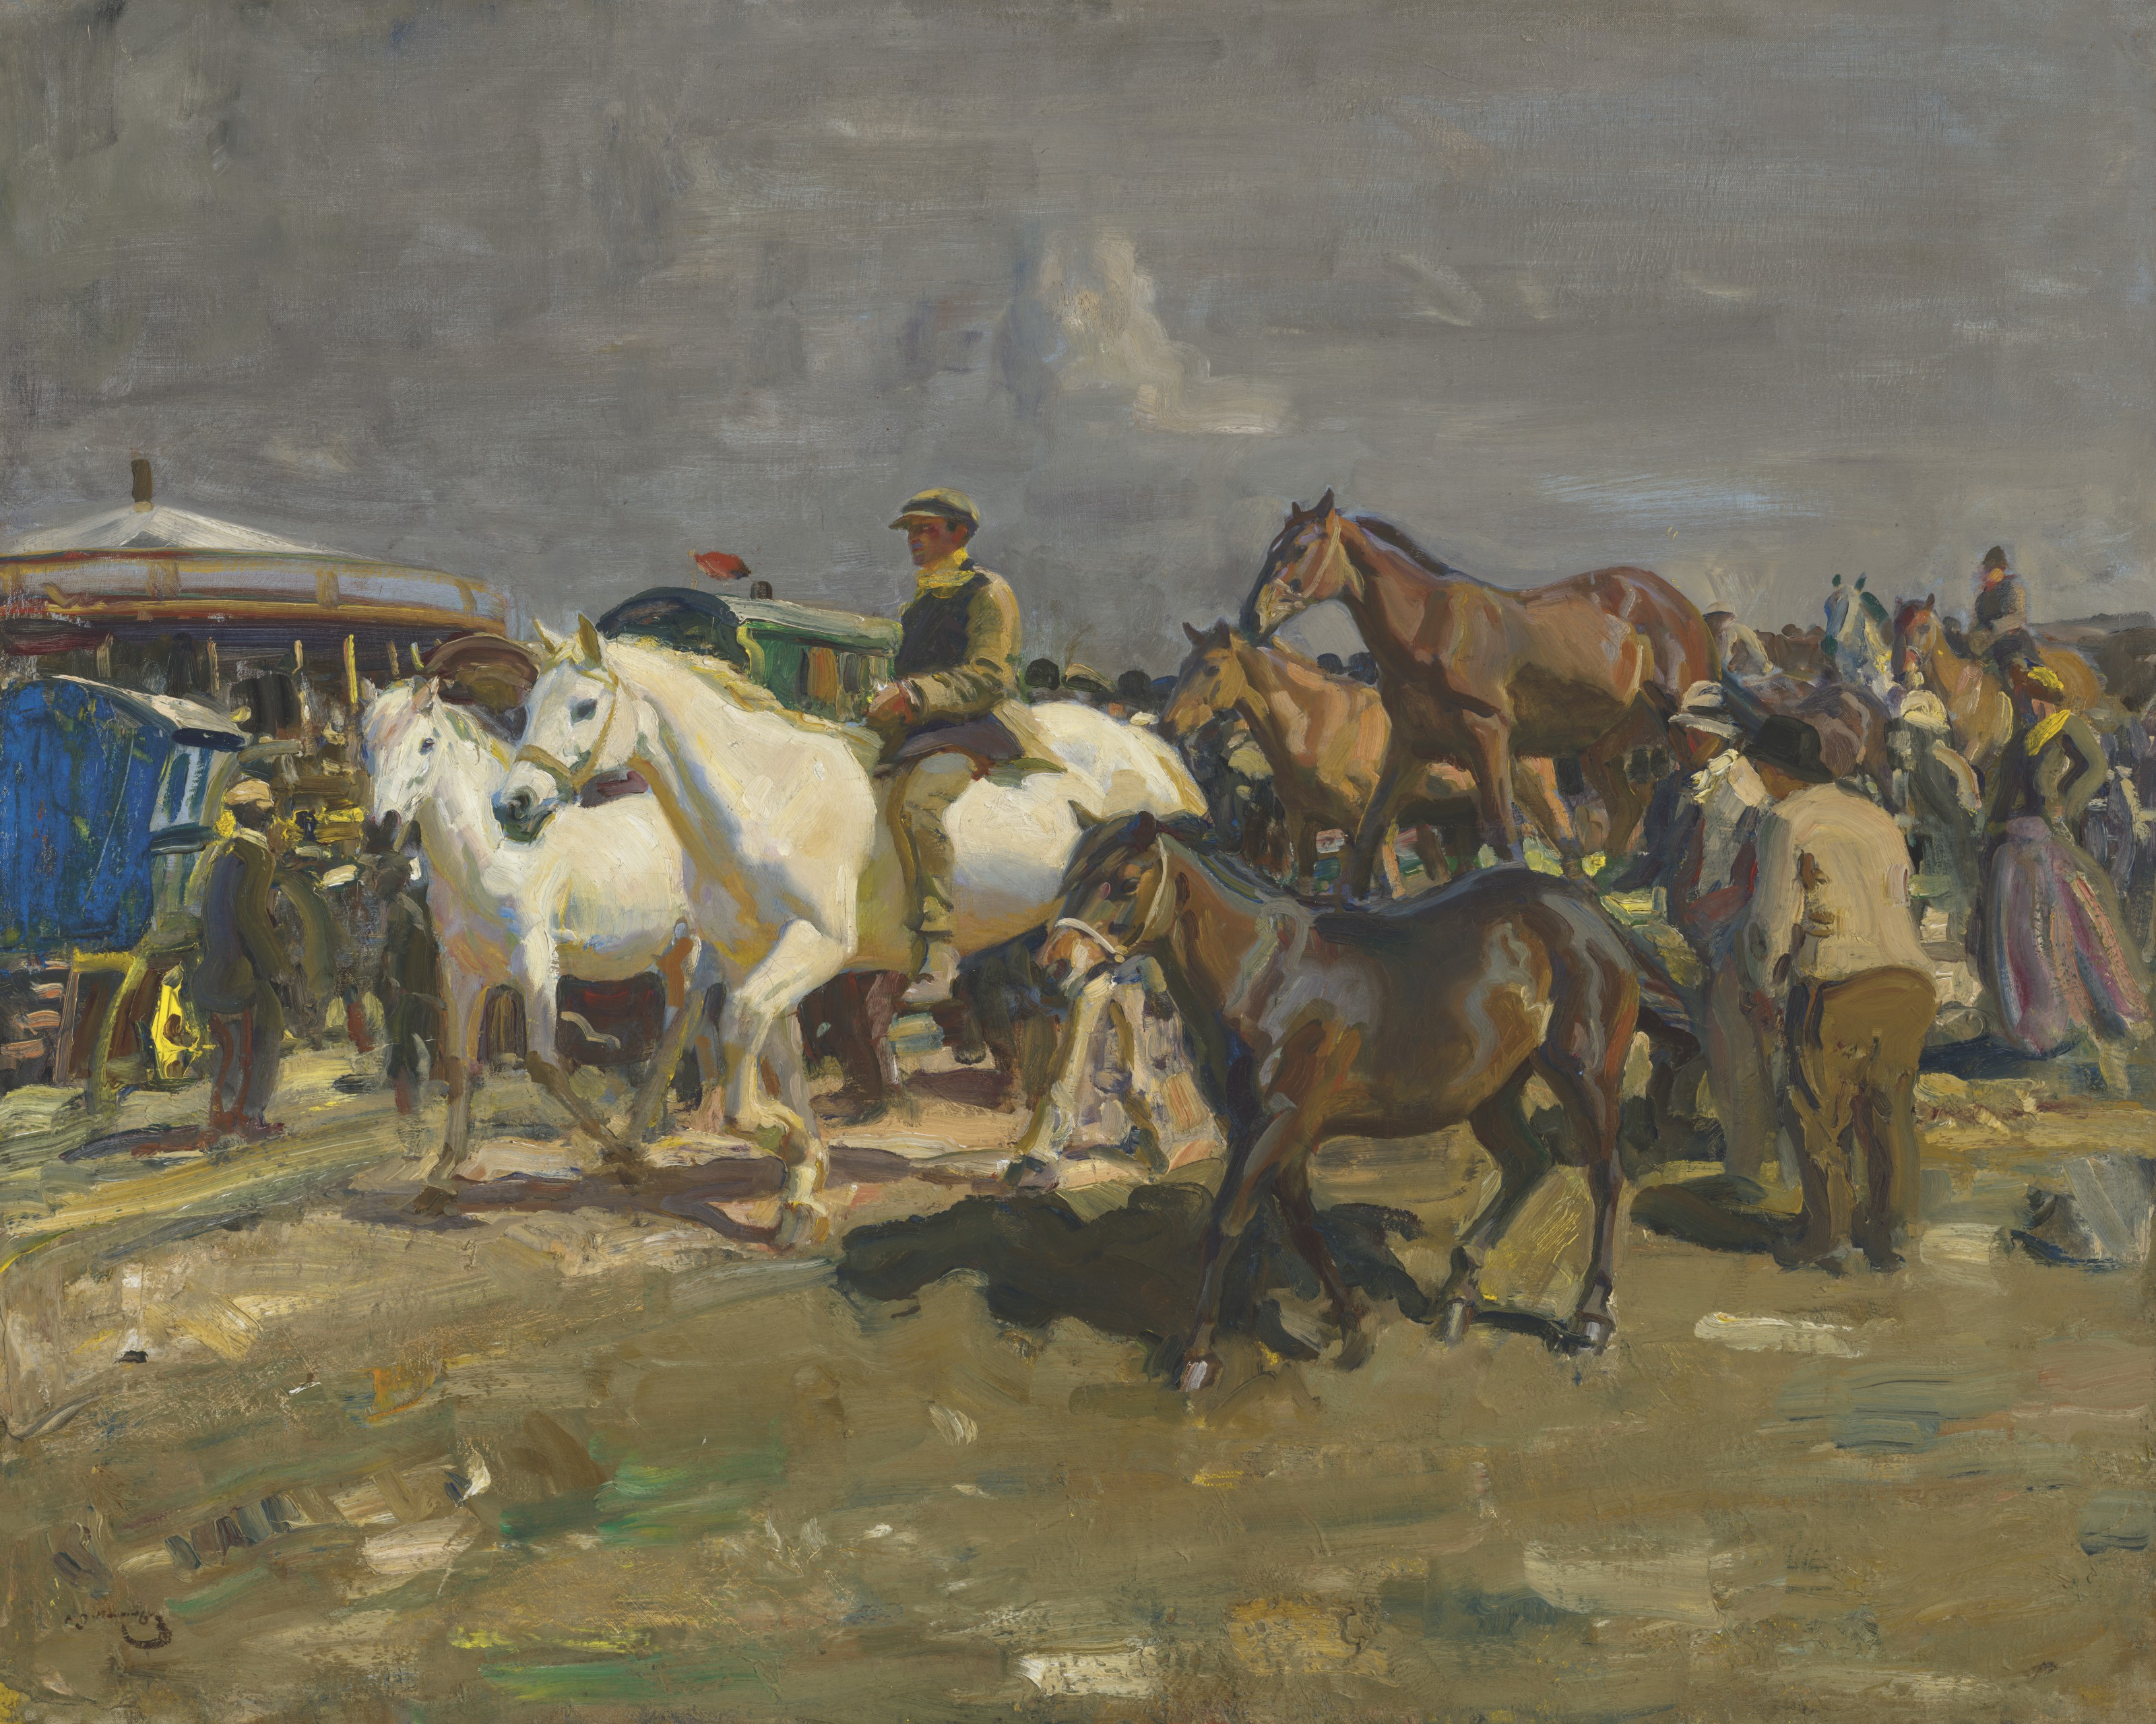 Sir Alfred James Munnings, P.R.A., R.W.S. (1878-1959), The Coming Storm, 1910.Oil on canvas. 40½ x 50  in (102.9 x 127  cm). Estimate £600,000-800,000. Offered in The B.J. Eastwood Collection Important Sporting and Irish Pictures on 9 July 2021 at Christie's in London